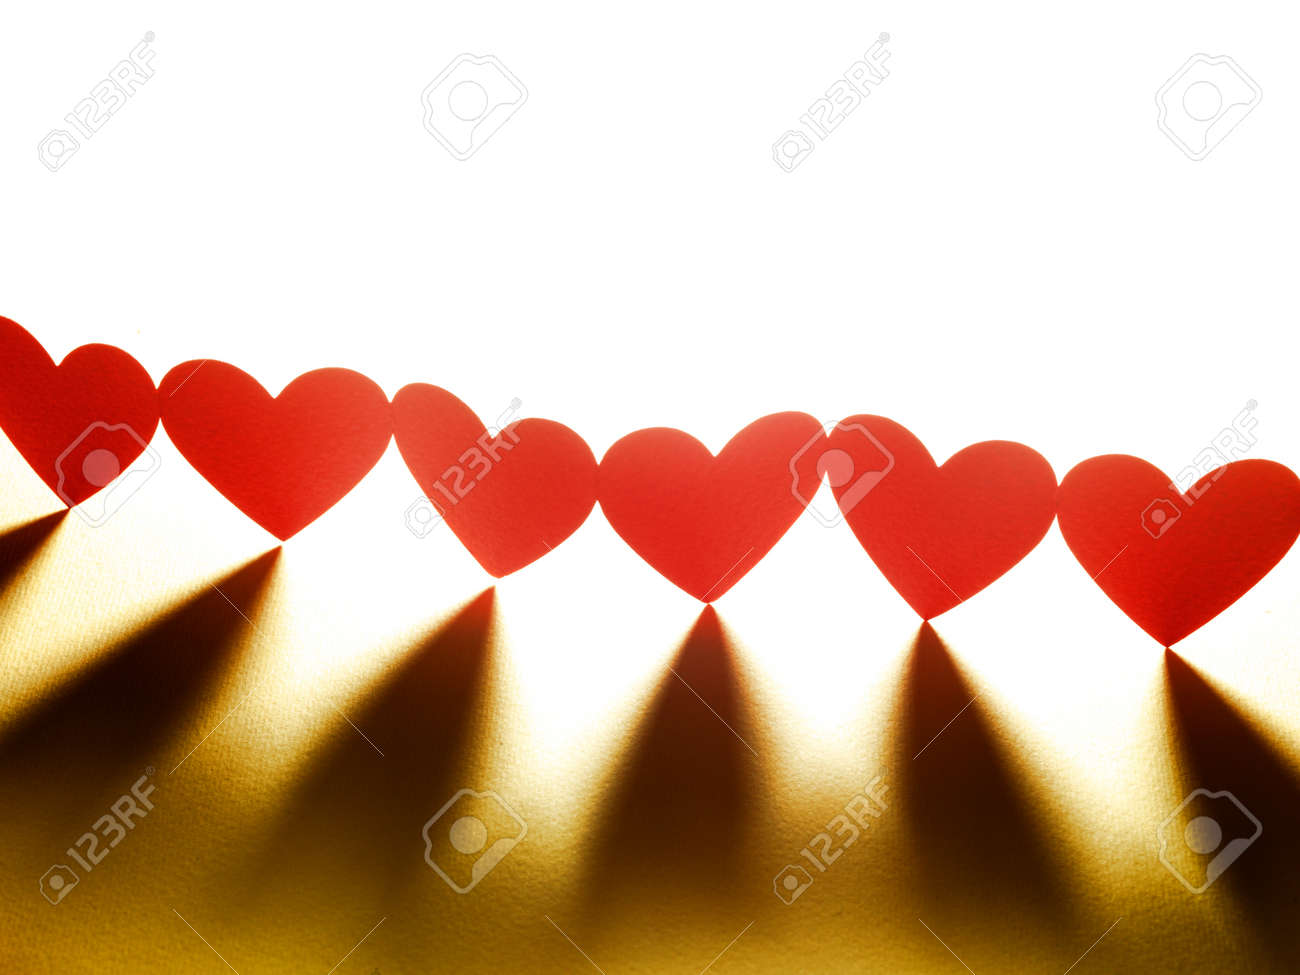 Group of red valentine hearts connected in chain, paper craft Stock Photo - 17604315